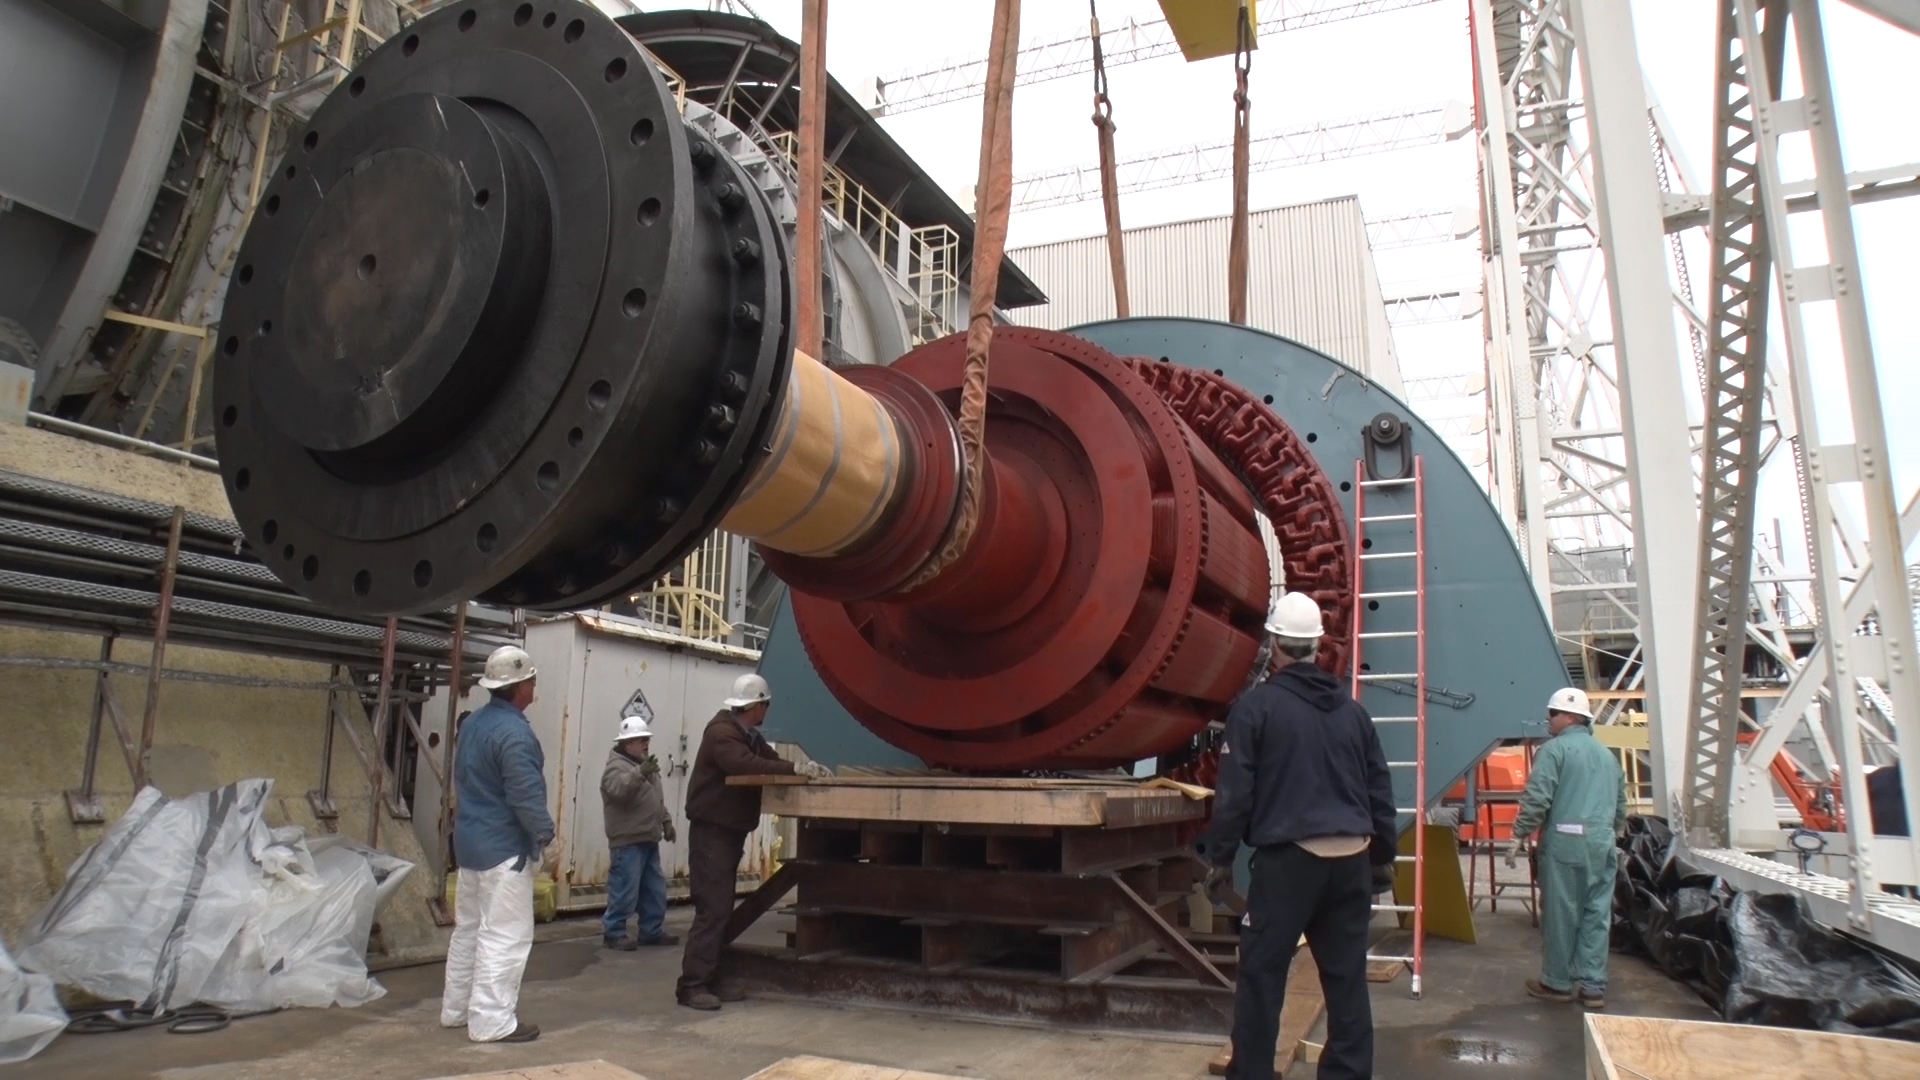 Original Stator Replaced At Aedc Propulsion Wind Tunnel